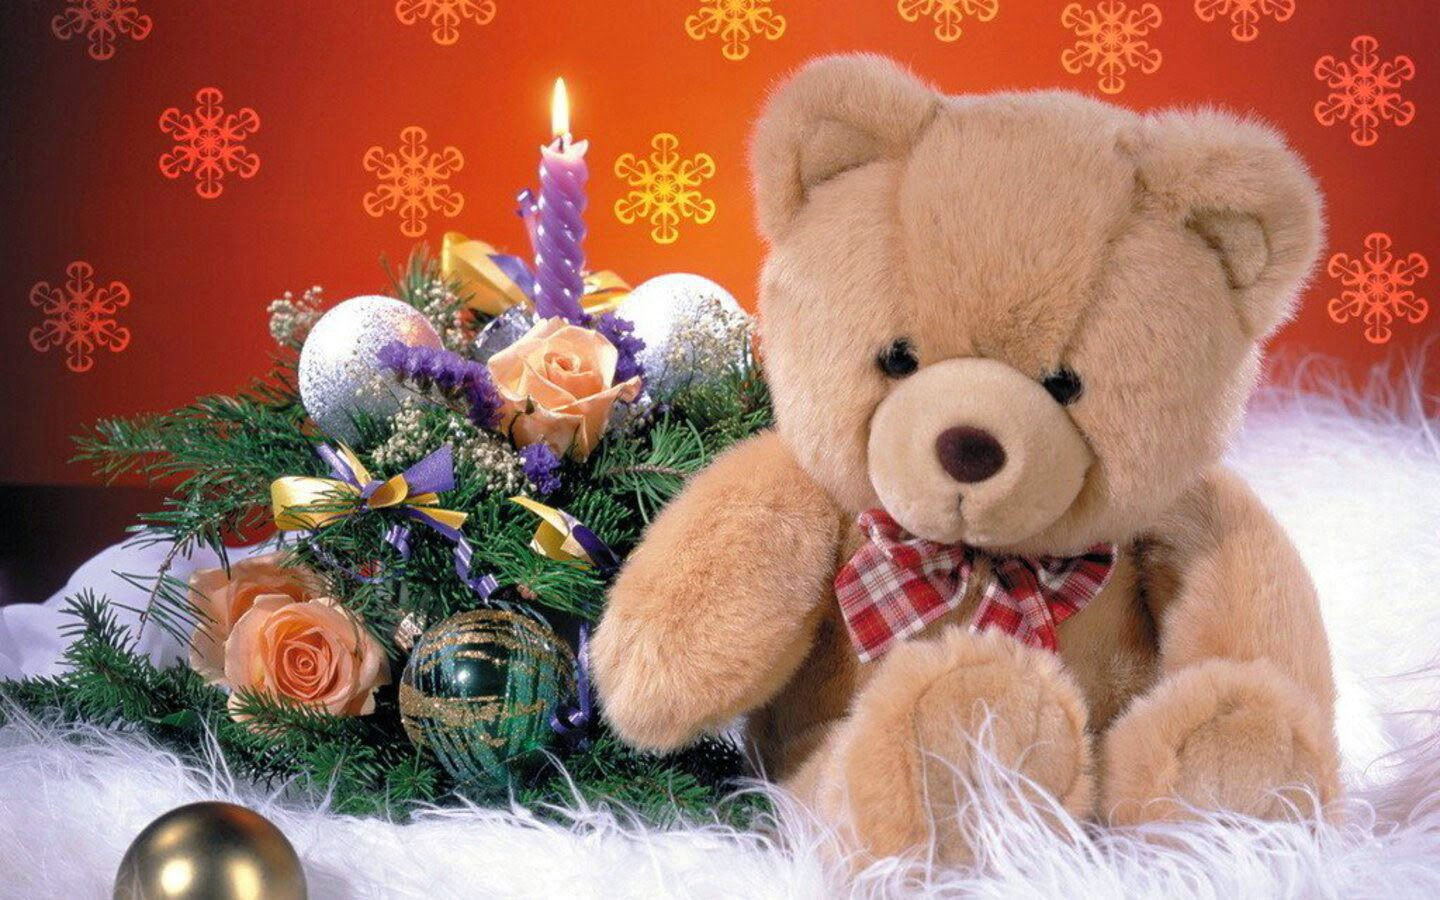 Hdwallpapers.org.in: Cute Teddy Bear Hd Photos